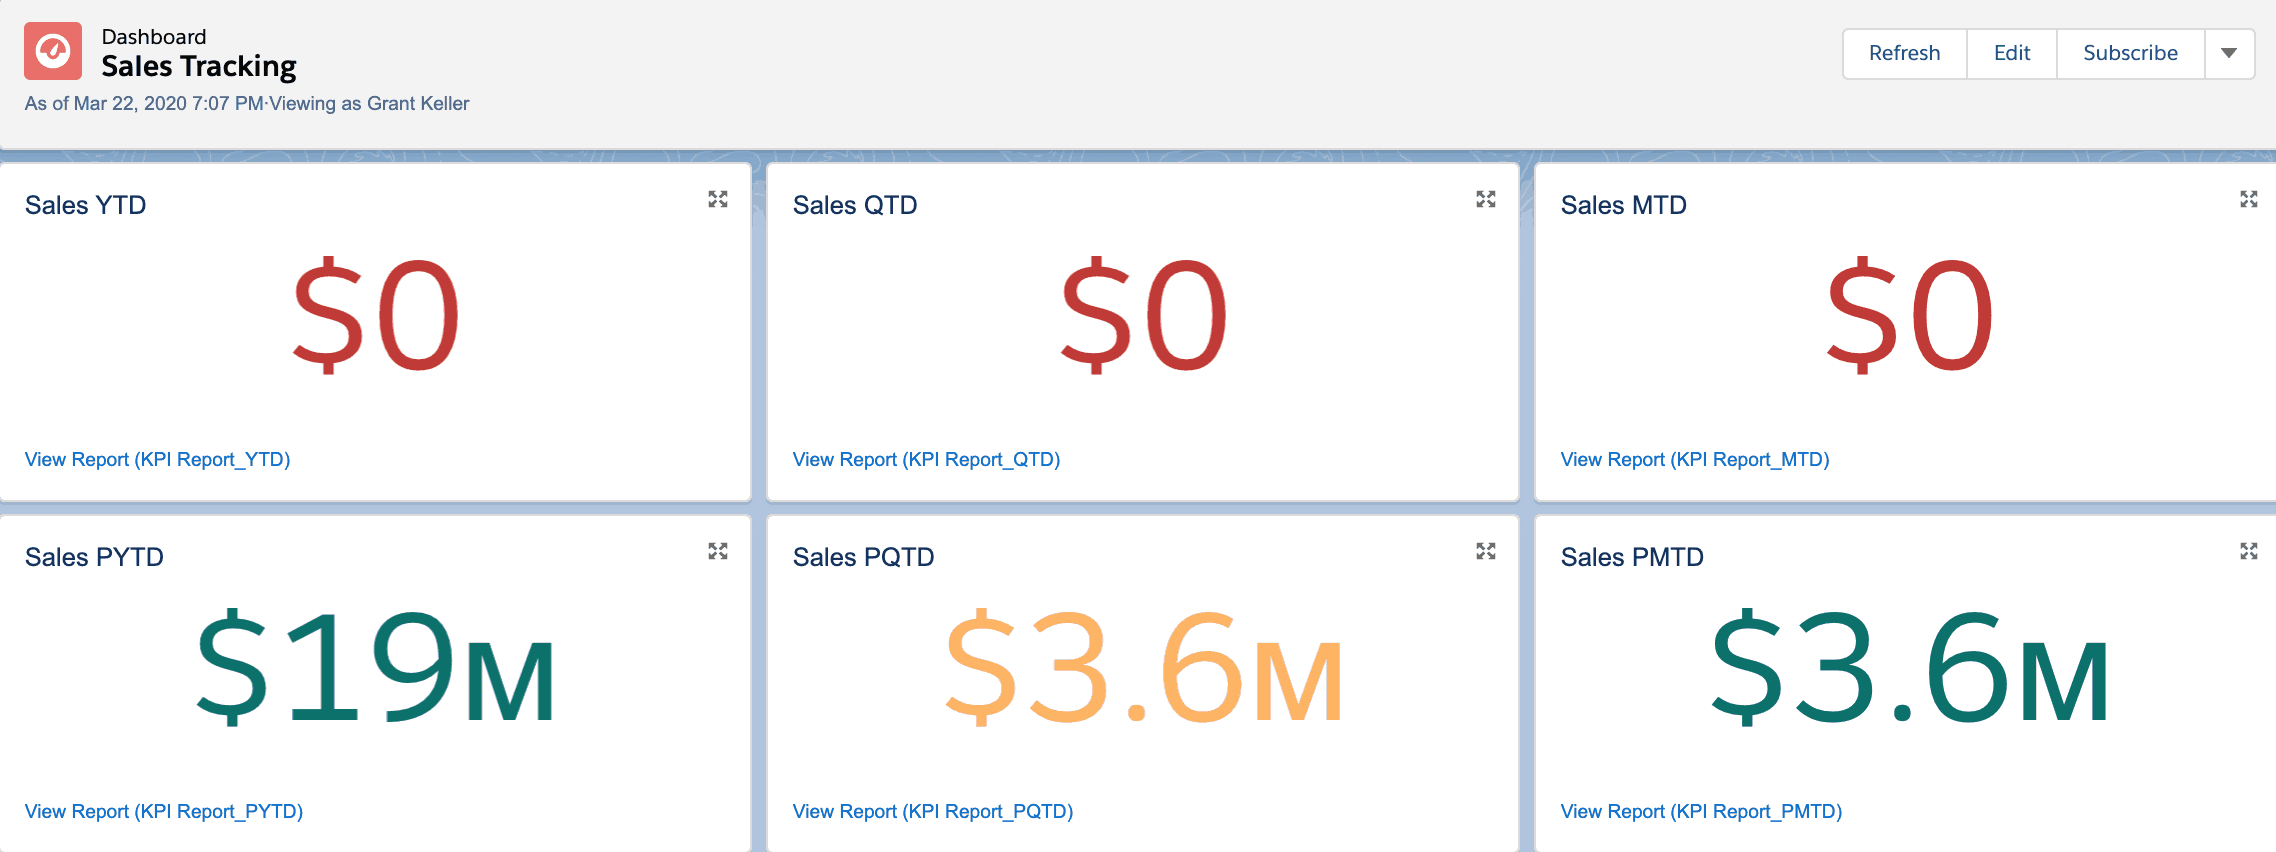 Sales Tracking Dashboard